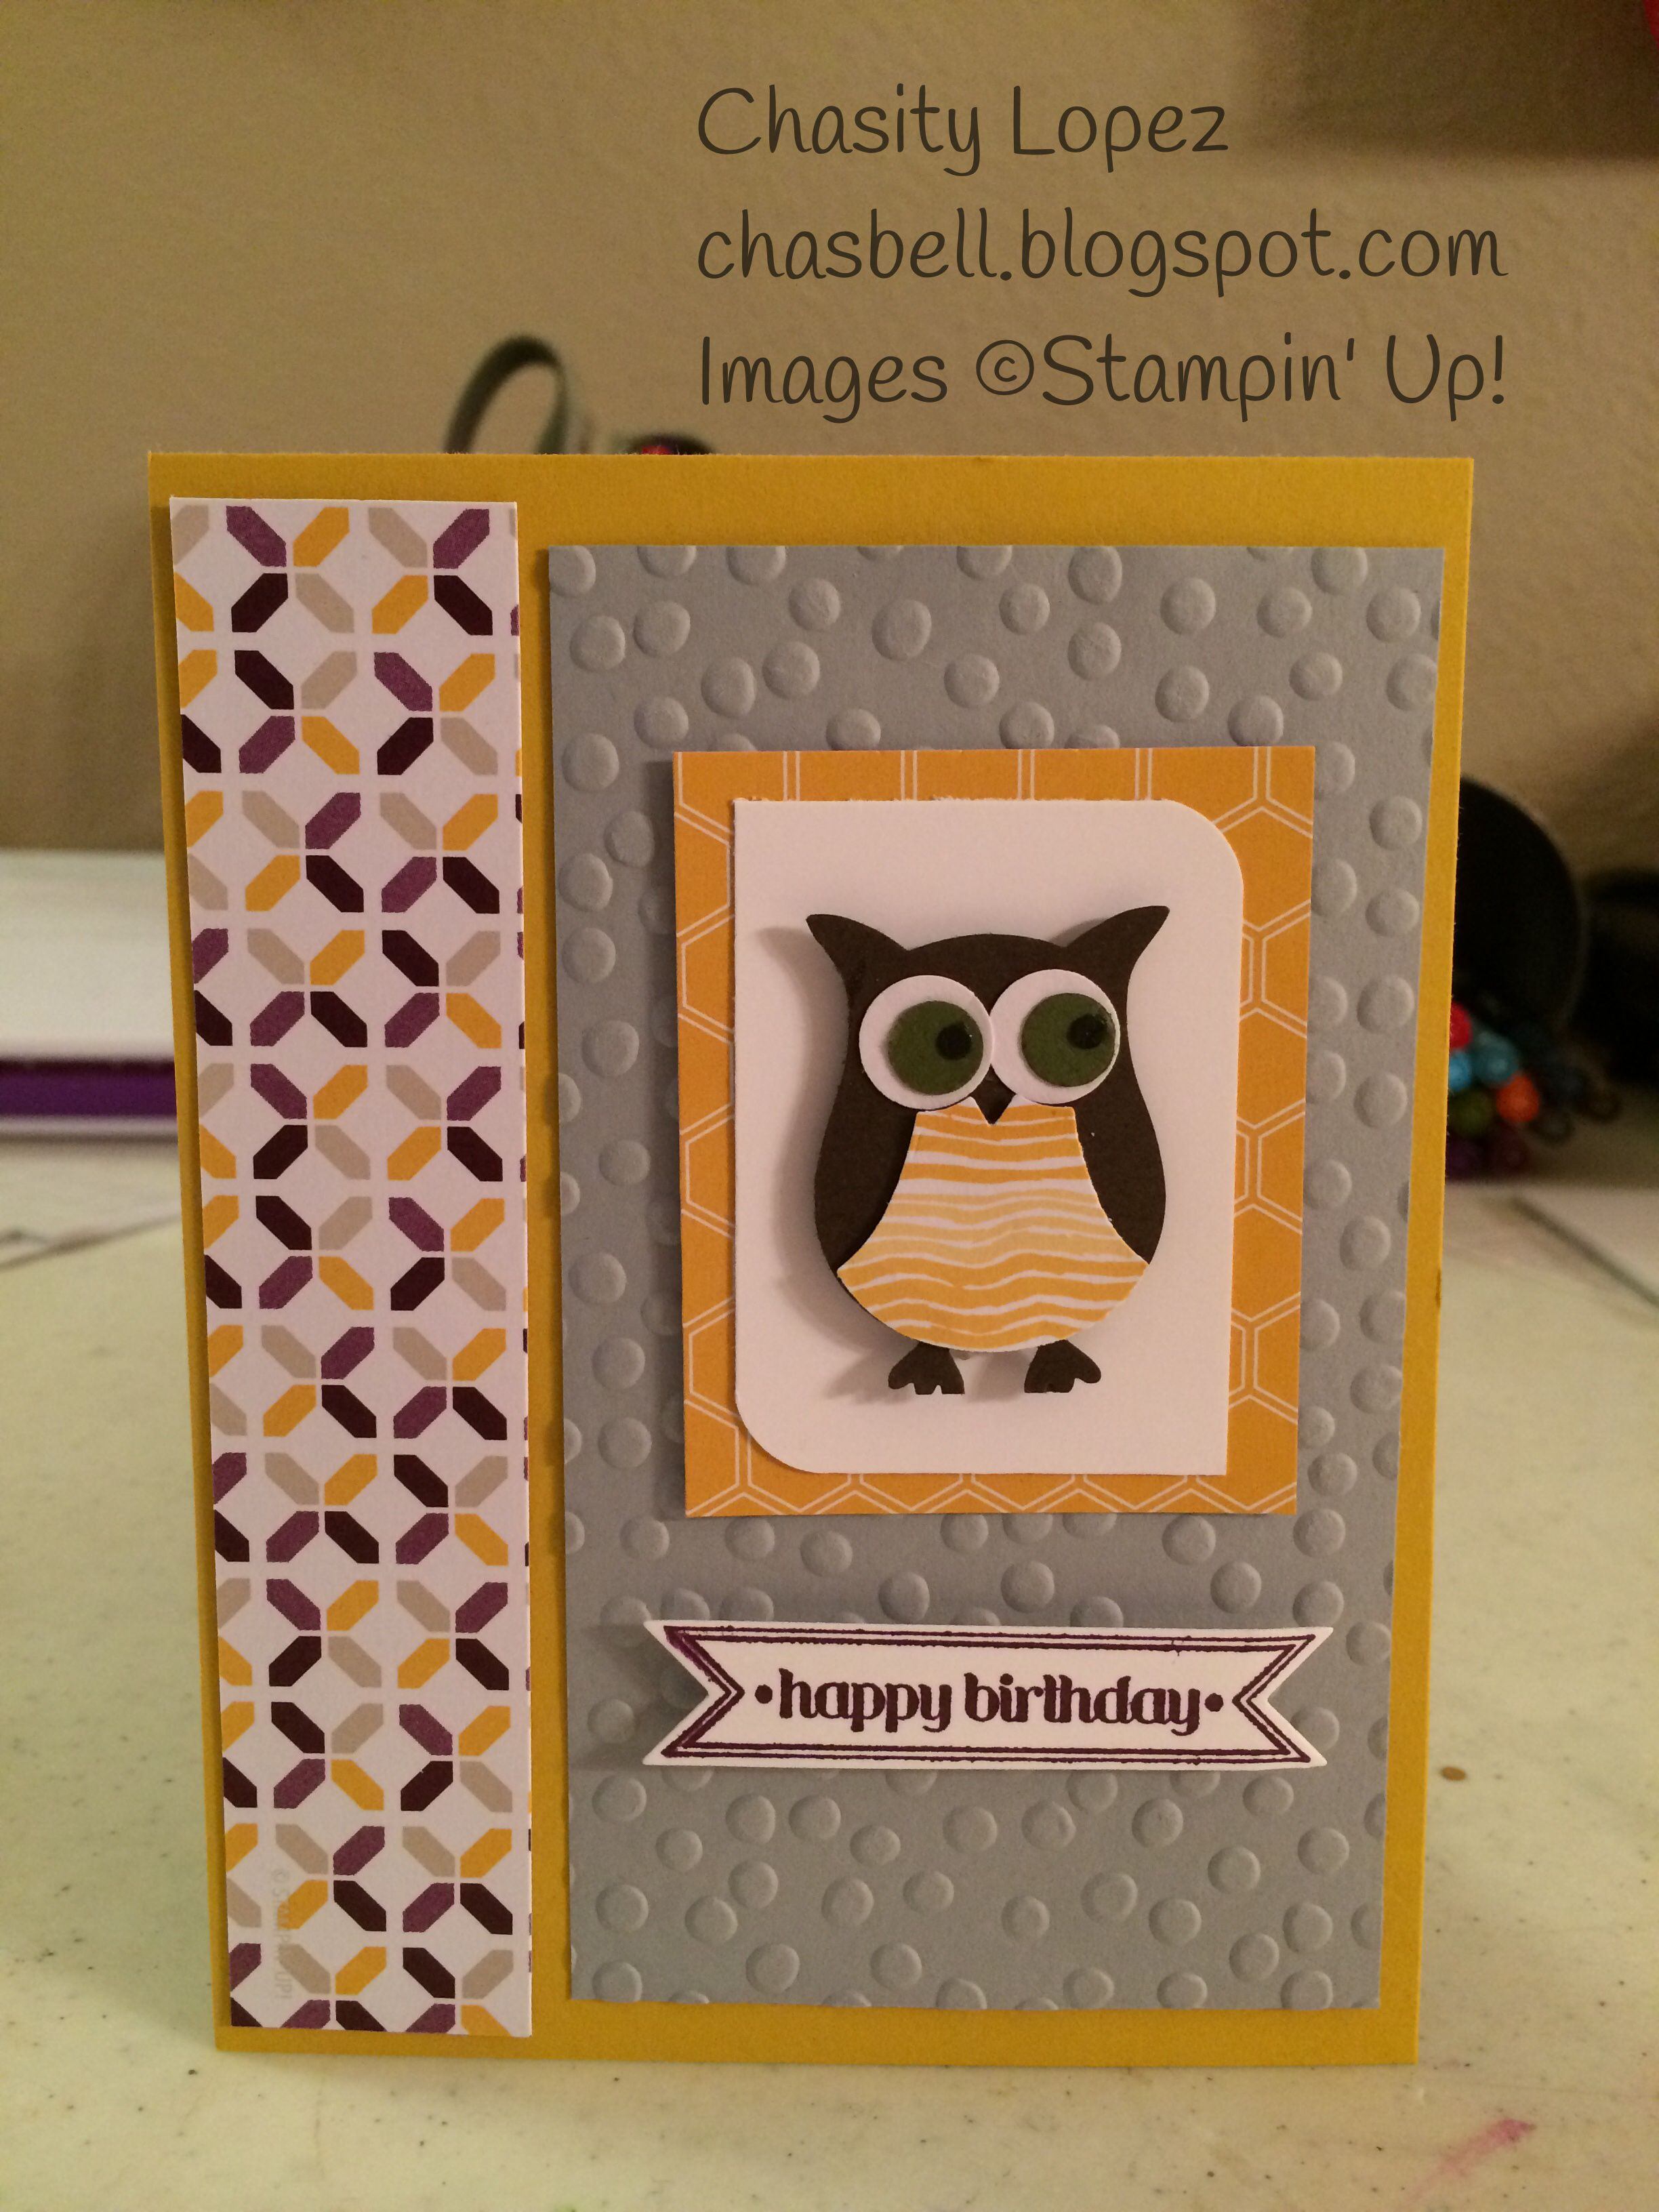 Hello Honey Cardstock, Smoky Slate Cardstock, Mossy Meadow Cardstock, Whisper White Cardstock, new Moonlight DSP , Blackberry Bliss stamp pads Itty Bitty Banners stamp set, Bitty Banners Framelits, Big Shot, Owl Punch.